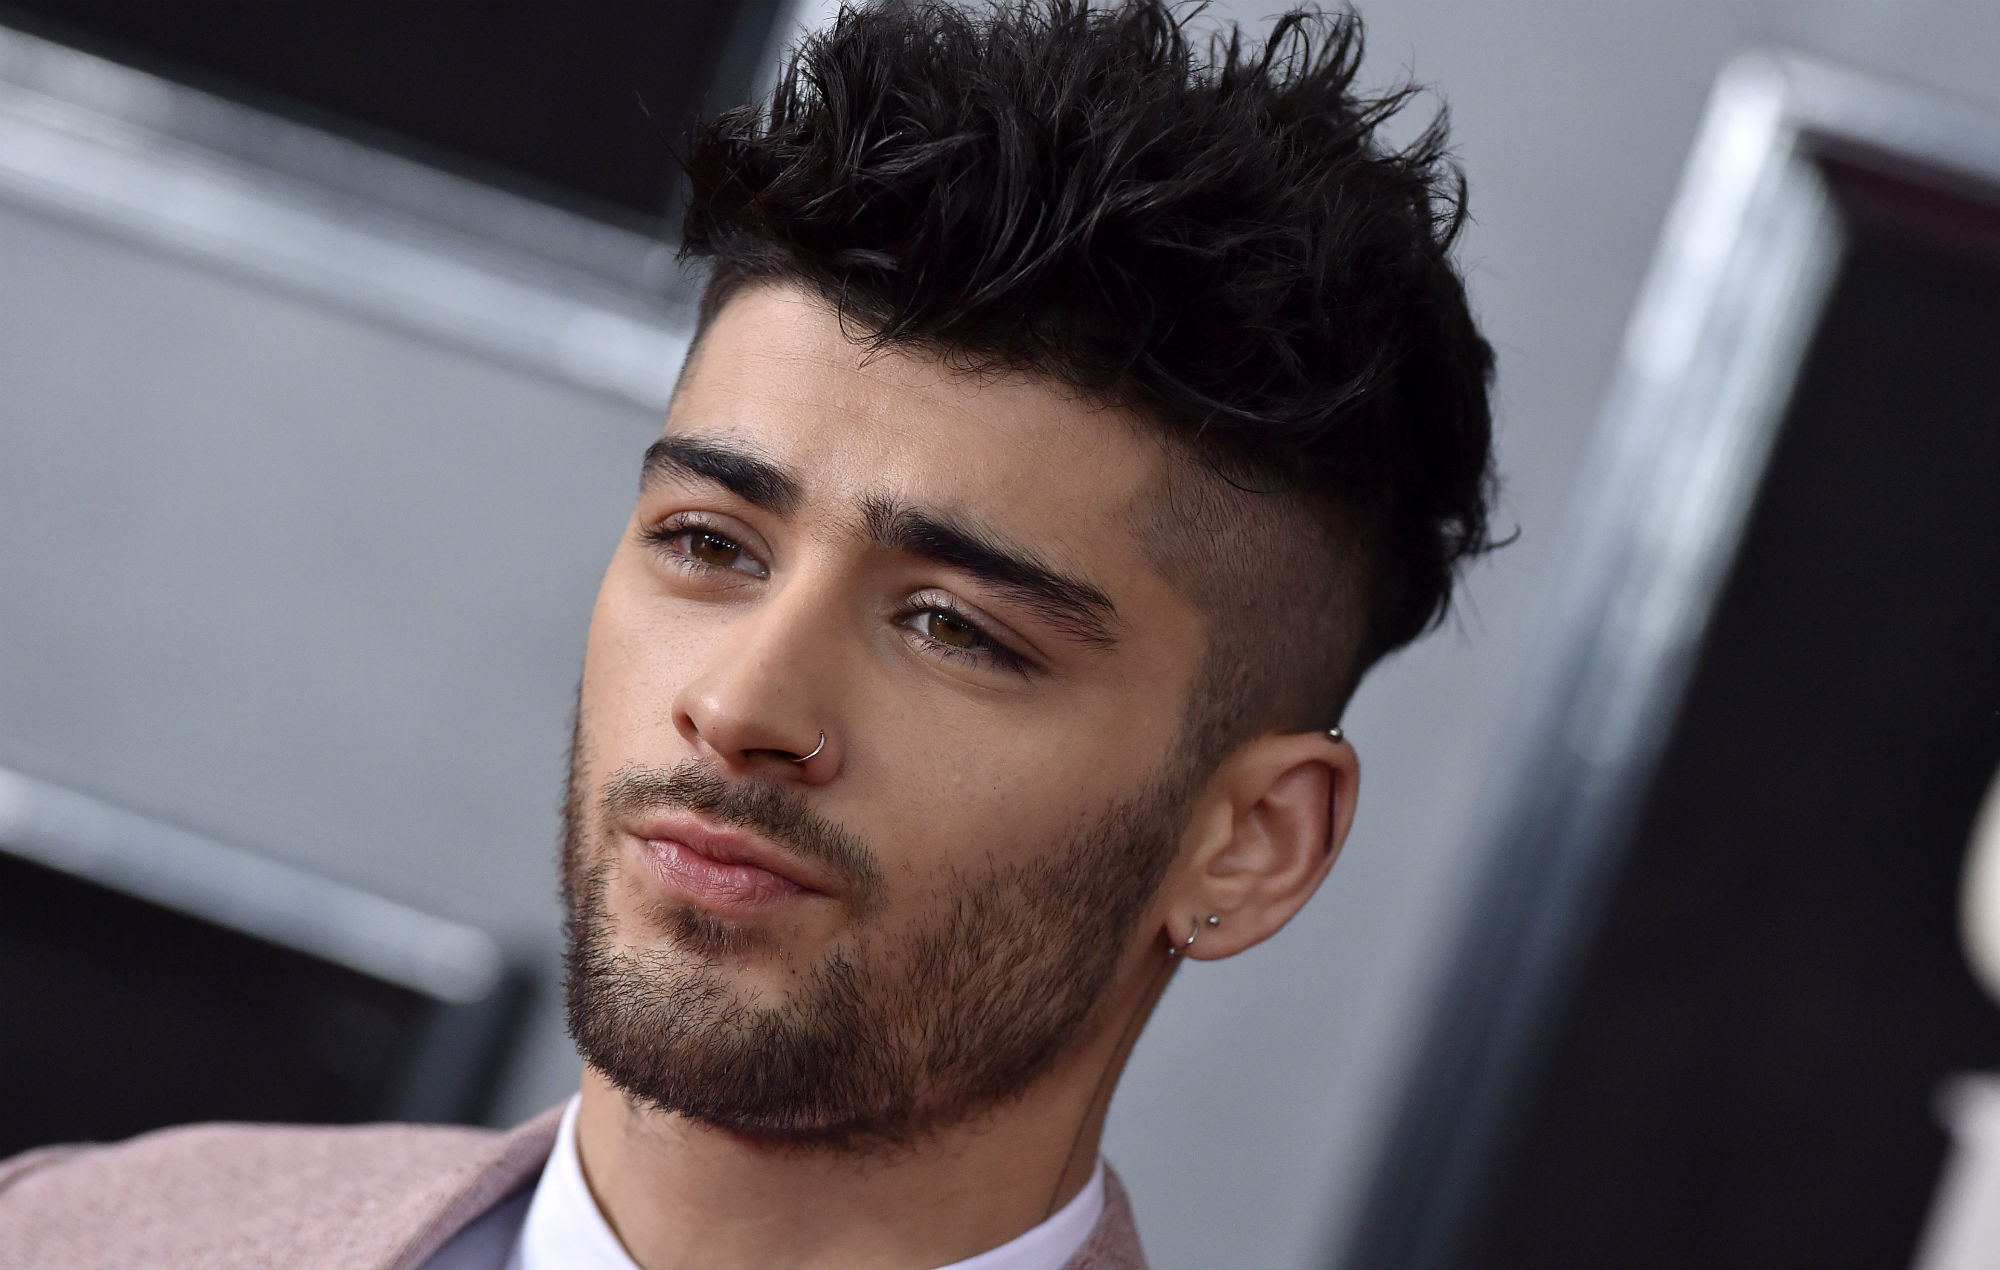 Listen to Zayn Malik collaborate with R3HAB and Jungleboi on new single, 'Flames' - NME Live